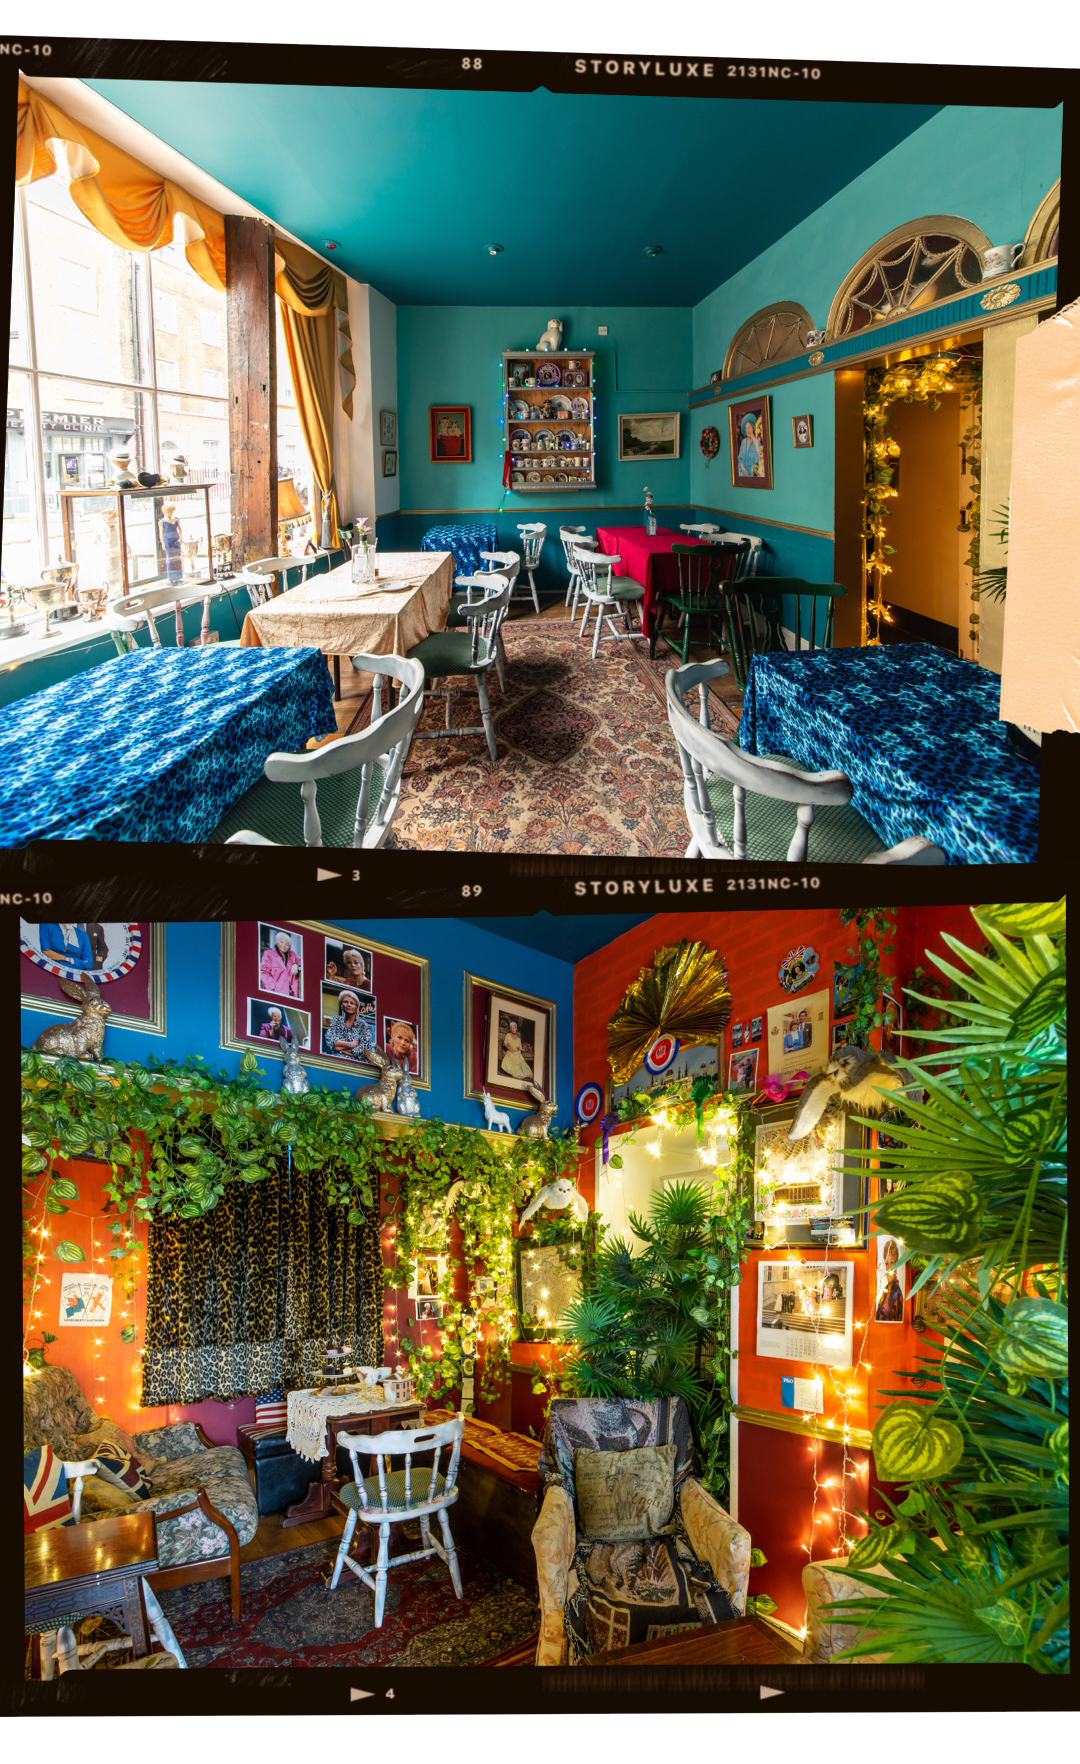 """LITTLE NAN'S FITZROVIA KITCHEN & BAR - Little Nan's is possibly the most eclectic venue in London. The mixture of kitsch, vintage and antique (described as Royal Kitsch) creates a cosy atmosphere, perfect for evening drinks or afternoon tea. Our favourite bit? On the food menu, you'll even spot """"Fitzrovia Disco Fries"""".Location:20-21 Warren Street, W1T 5LT"""